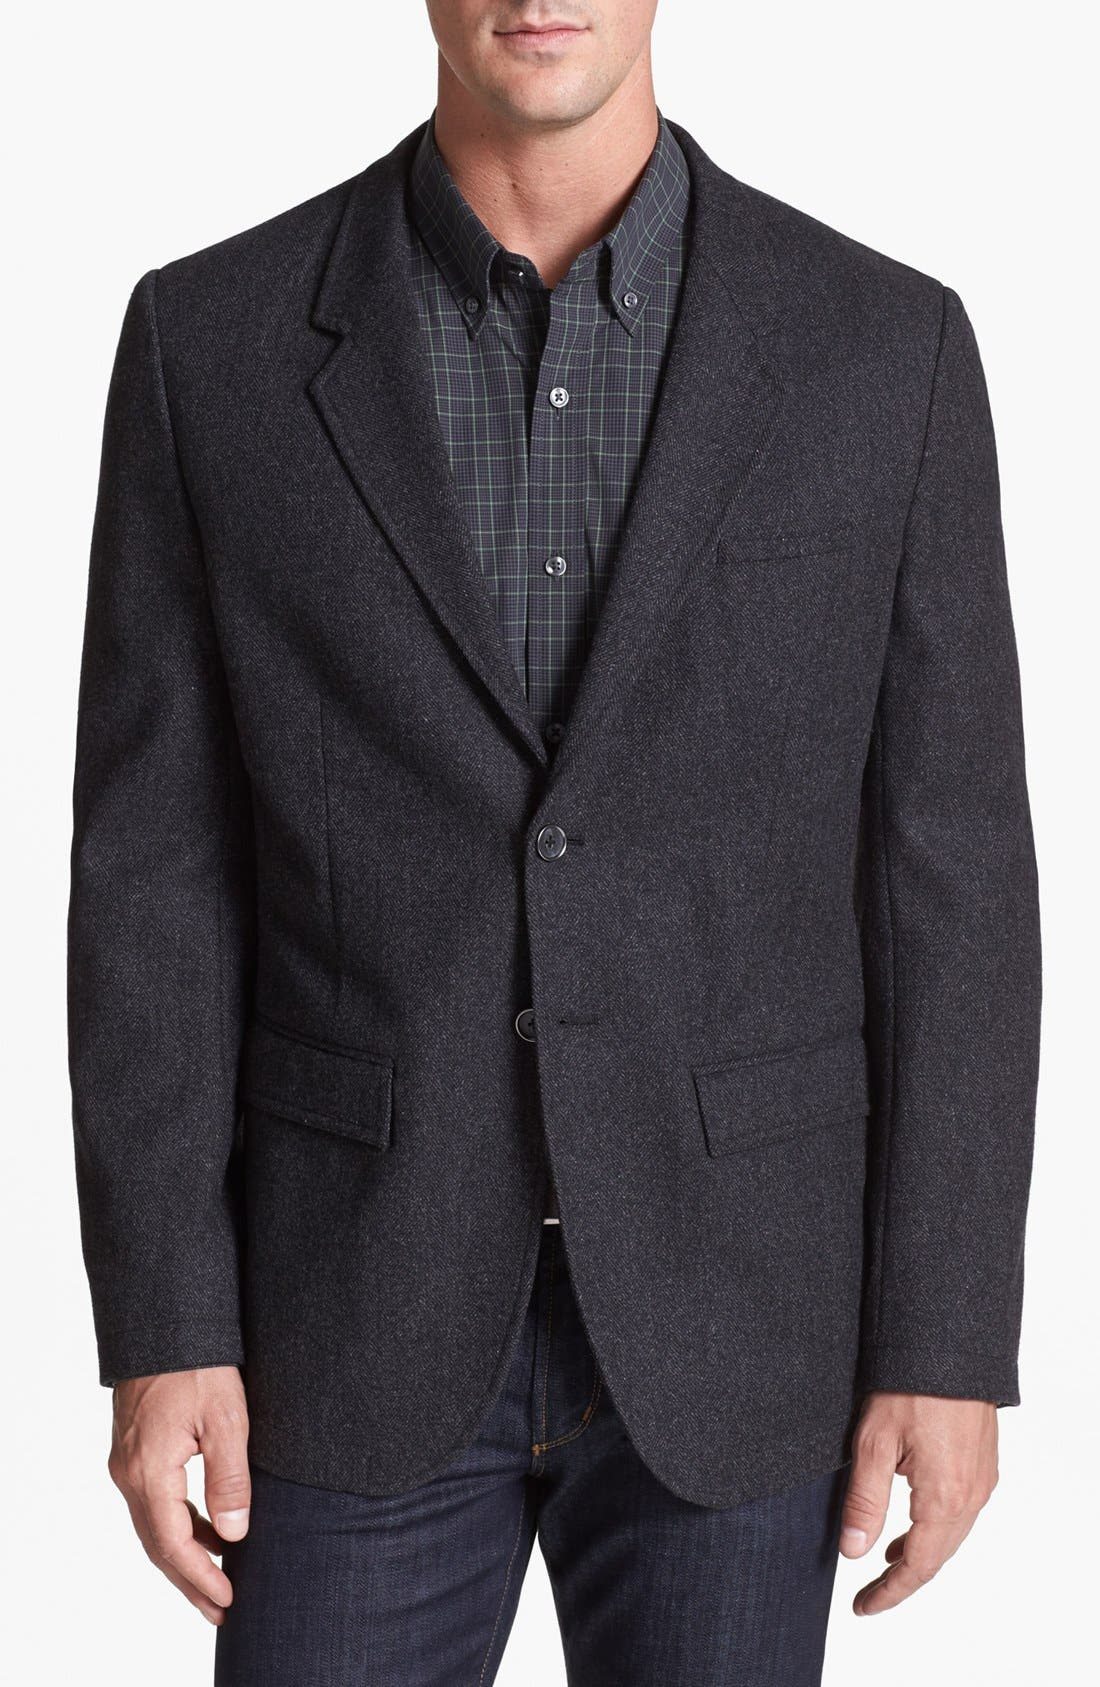 Alternate Image 1 Selected - Cutter & Buck 'Tavern Law' Sportcoat (Big & Tall)